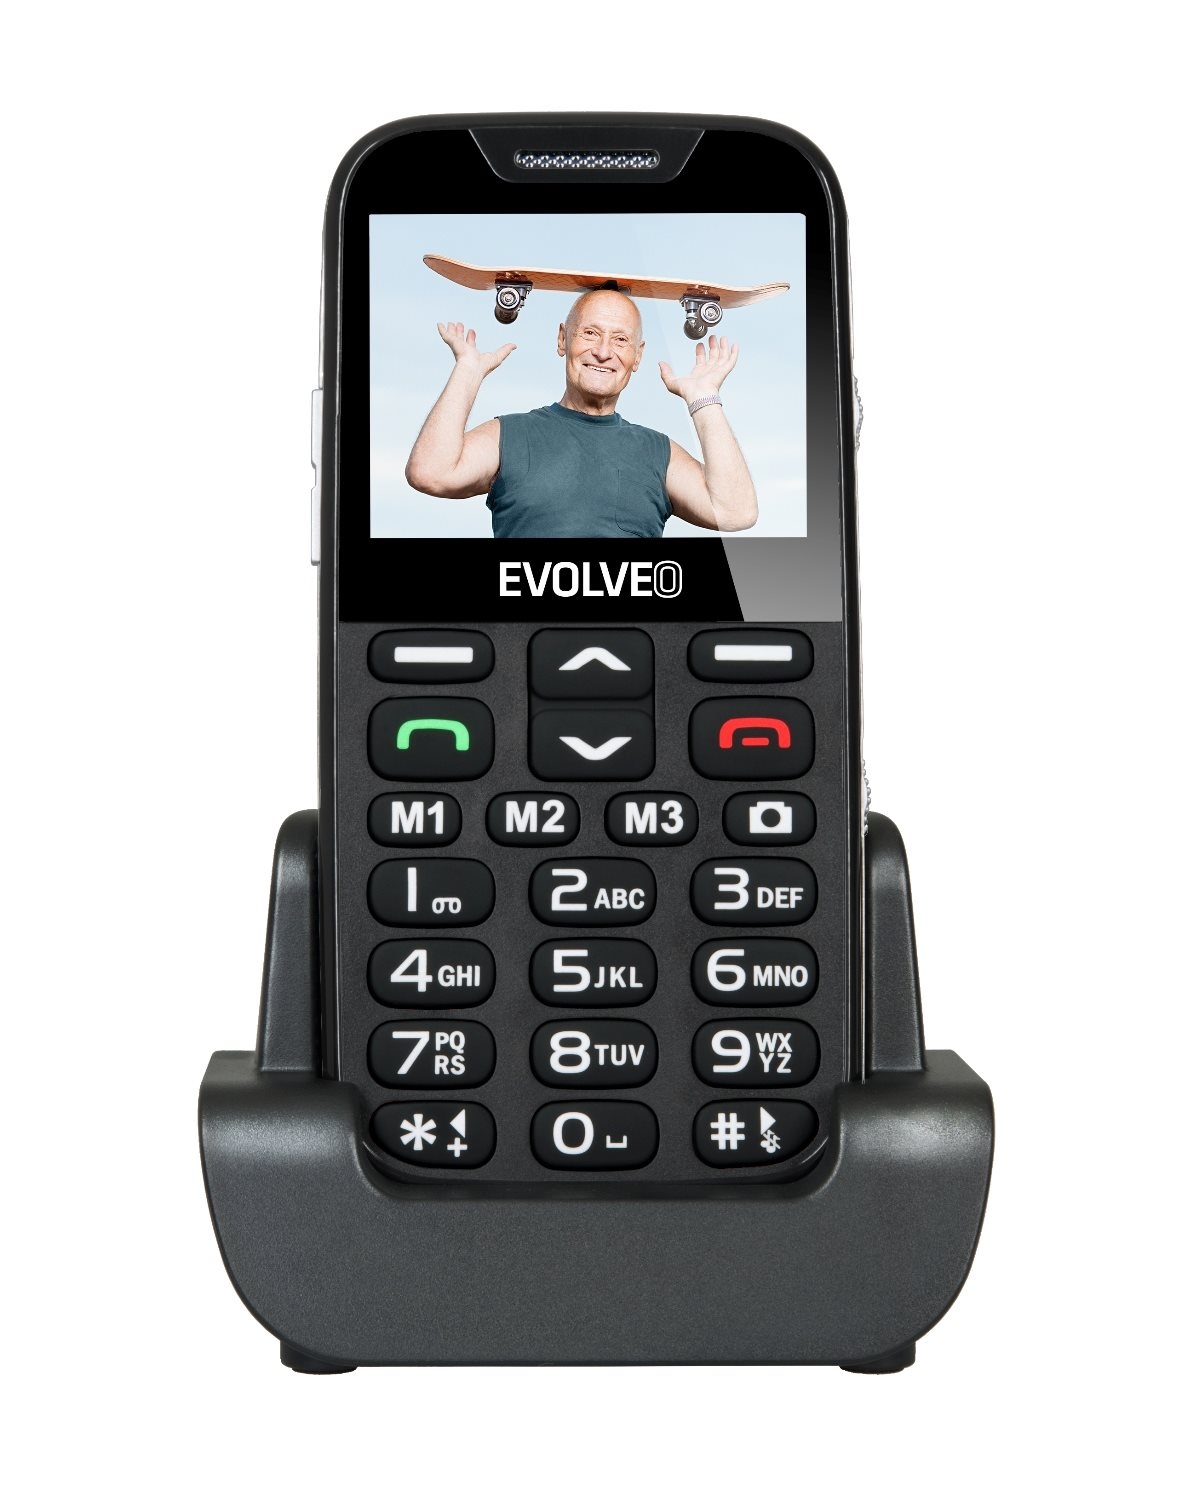 EVOLVEO EasyPhone XD, a mobile phone for seniors with a charging stand, black